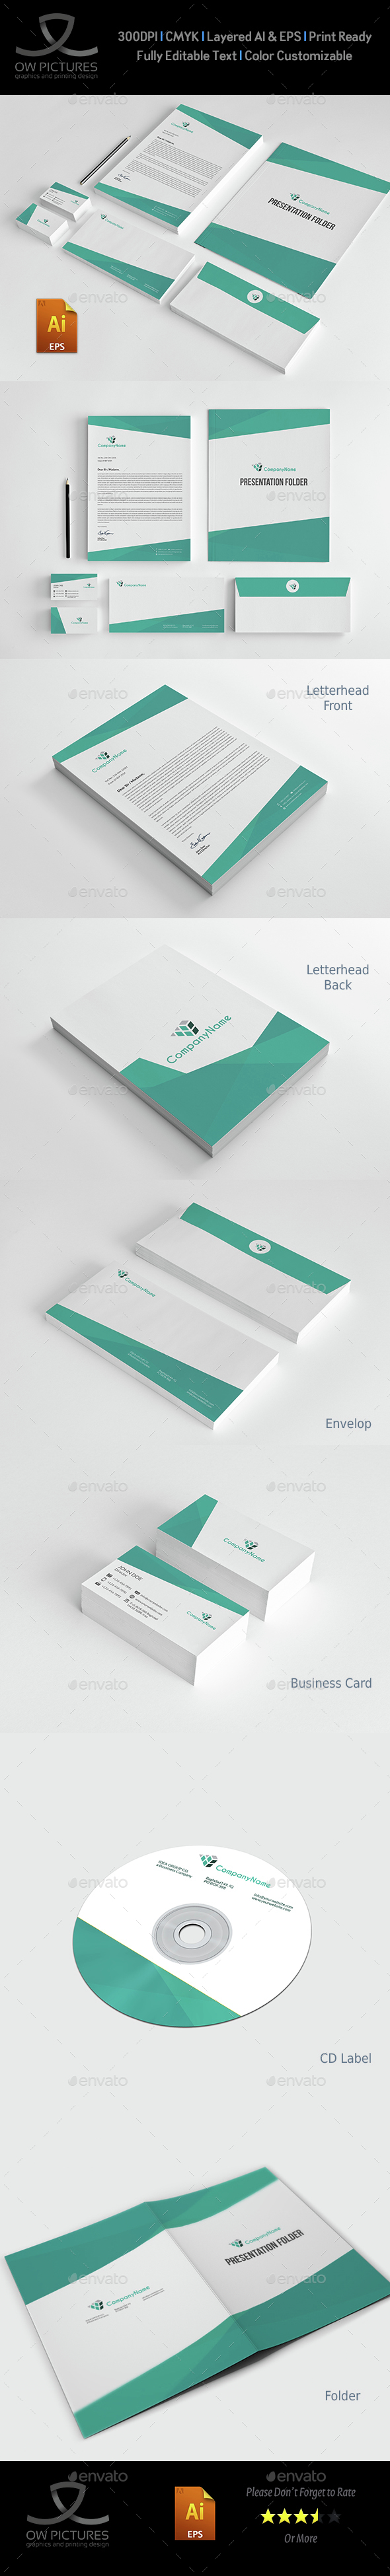 Corporate Stationery Pack Design Template Vol.12 - Stationery Print Templates